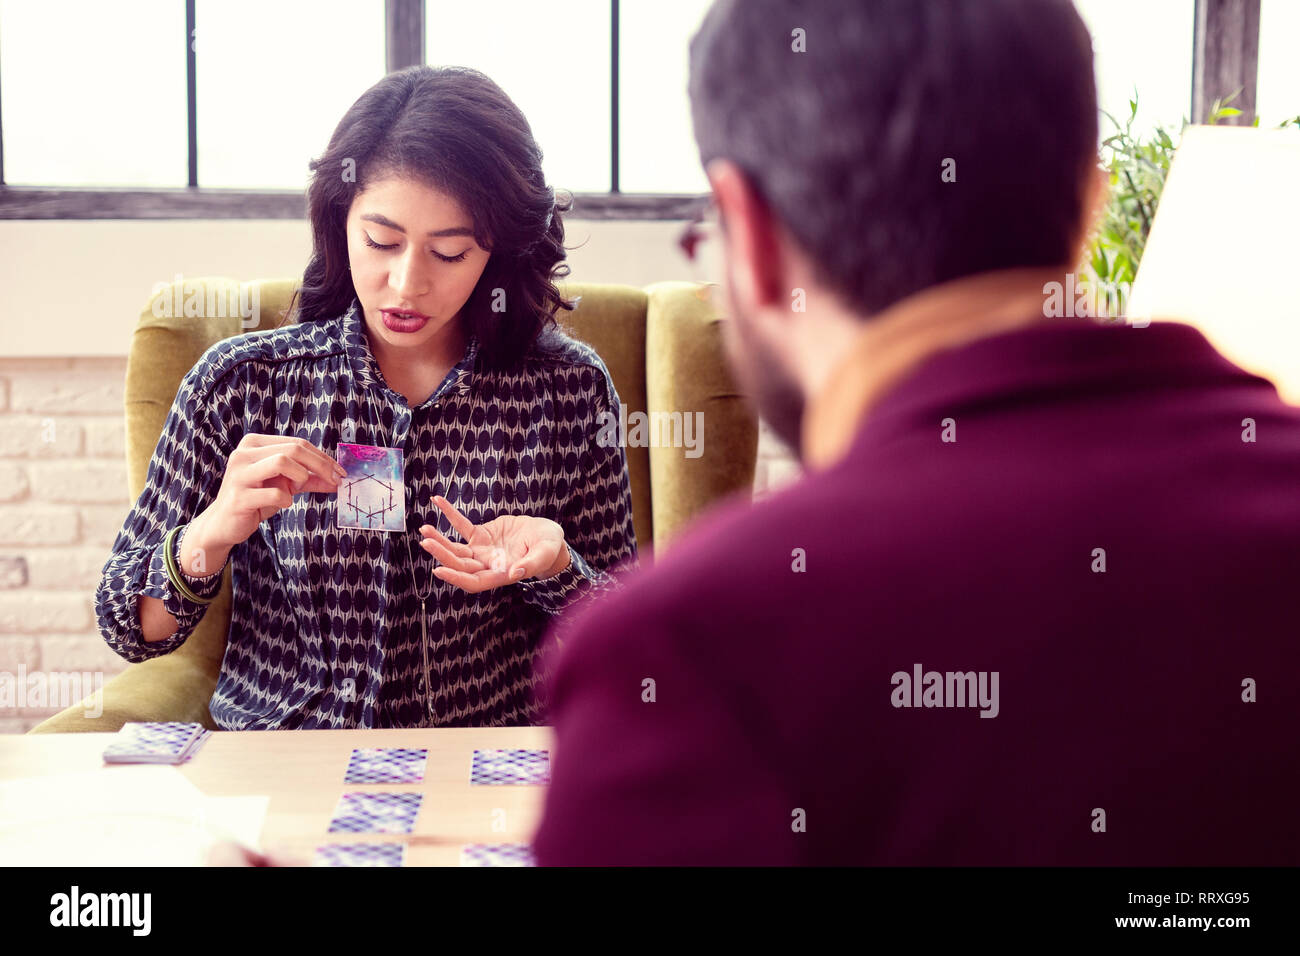 Nice dark haired woman explaining the meaning of a card - Stock Image